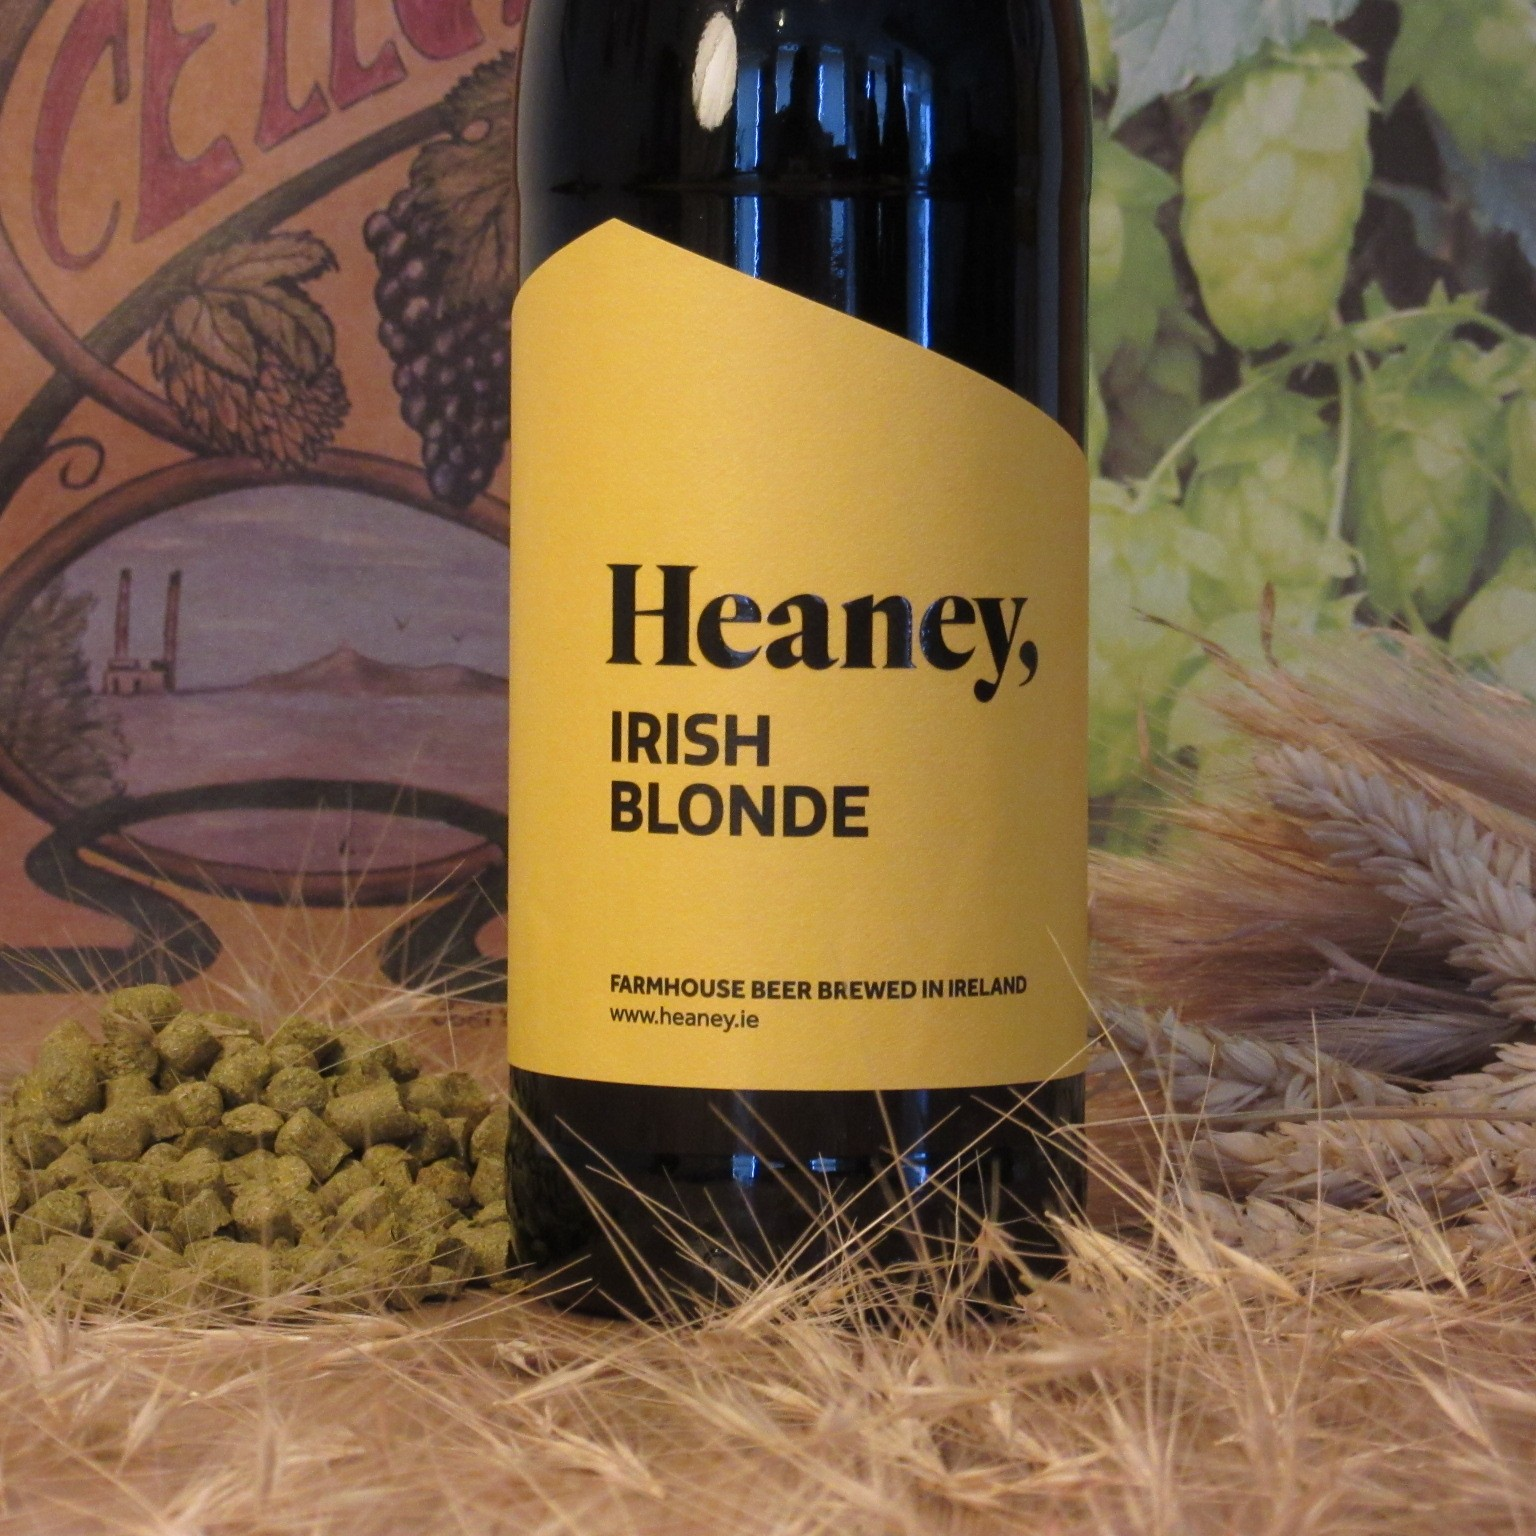 Heaney Irish Blonde